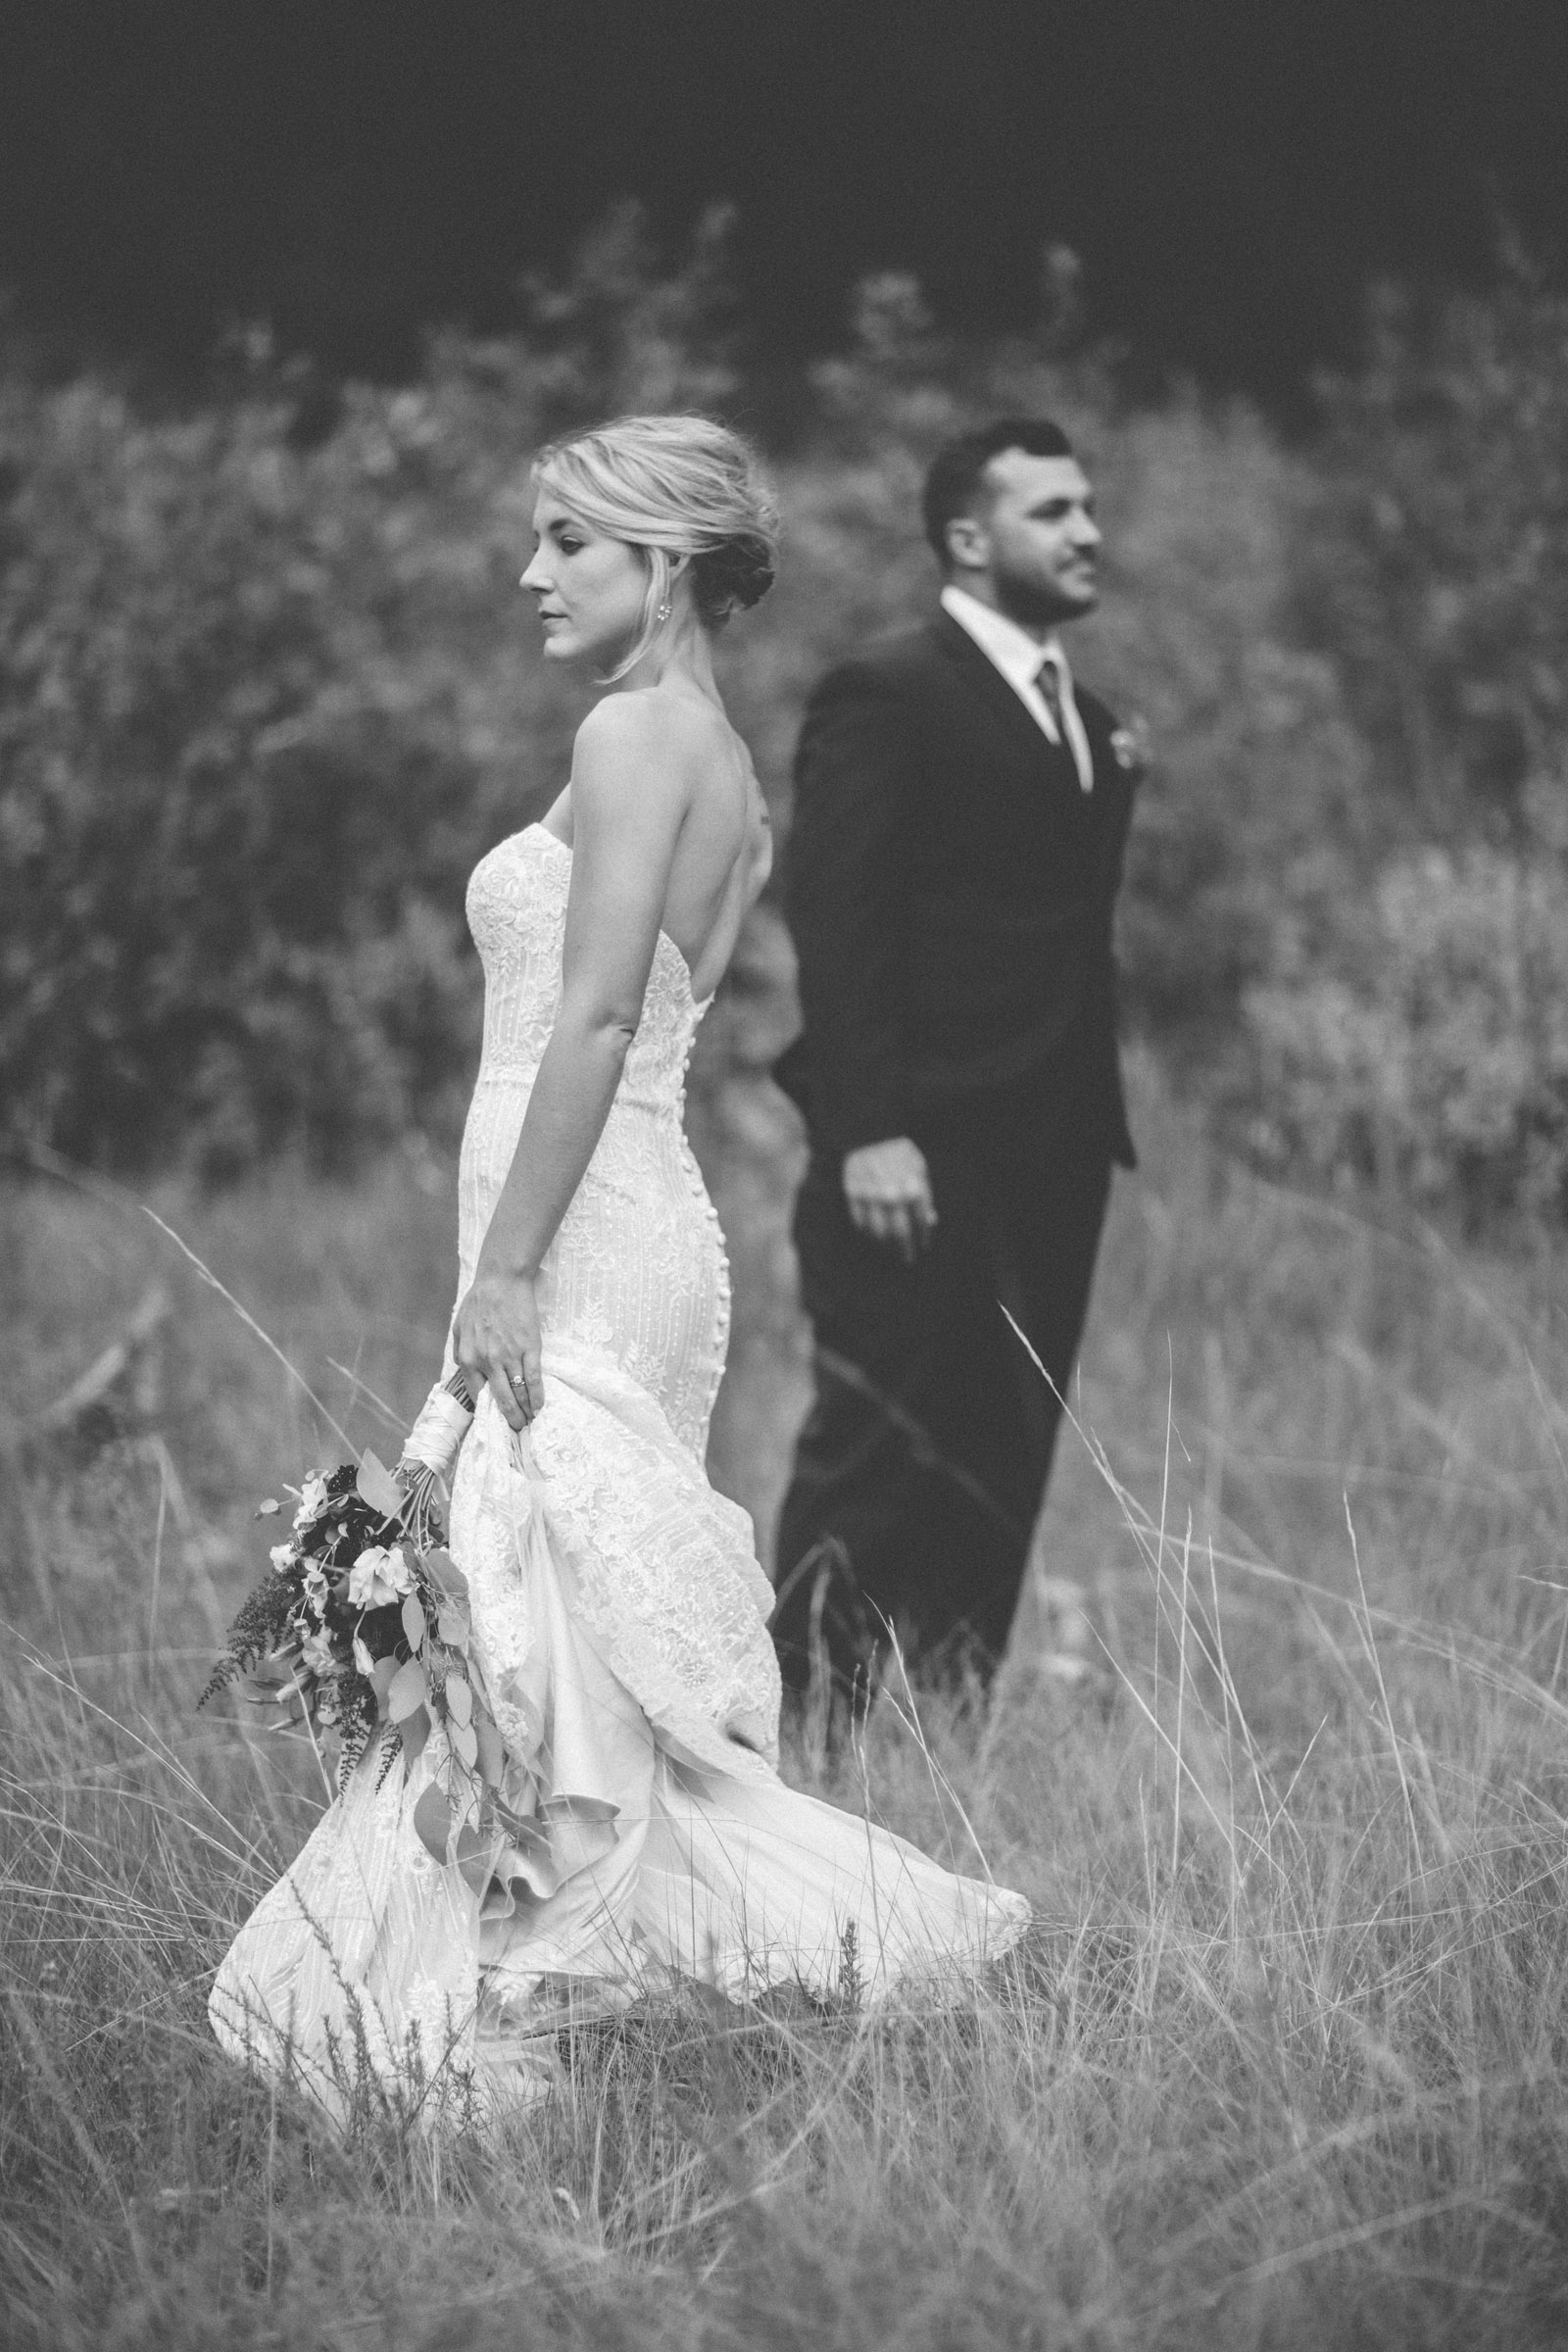 153-beautiful-bride-and-groom-photojournalist-portraits-at-elopement-wedding-in-durango-colorado-forest